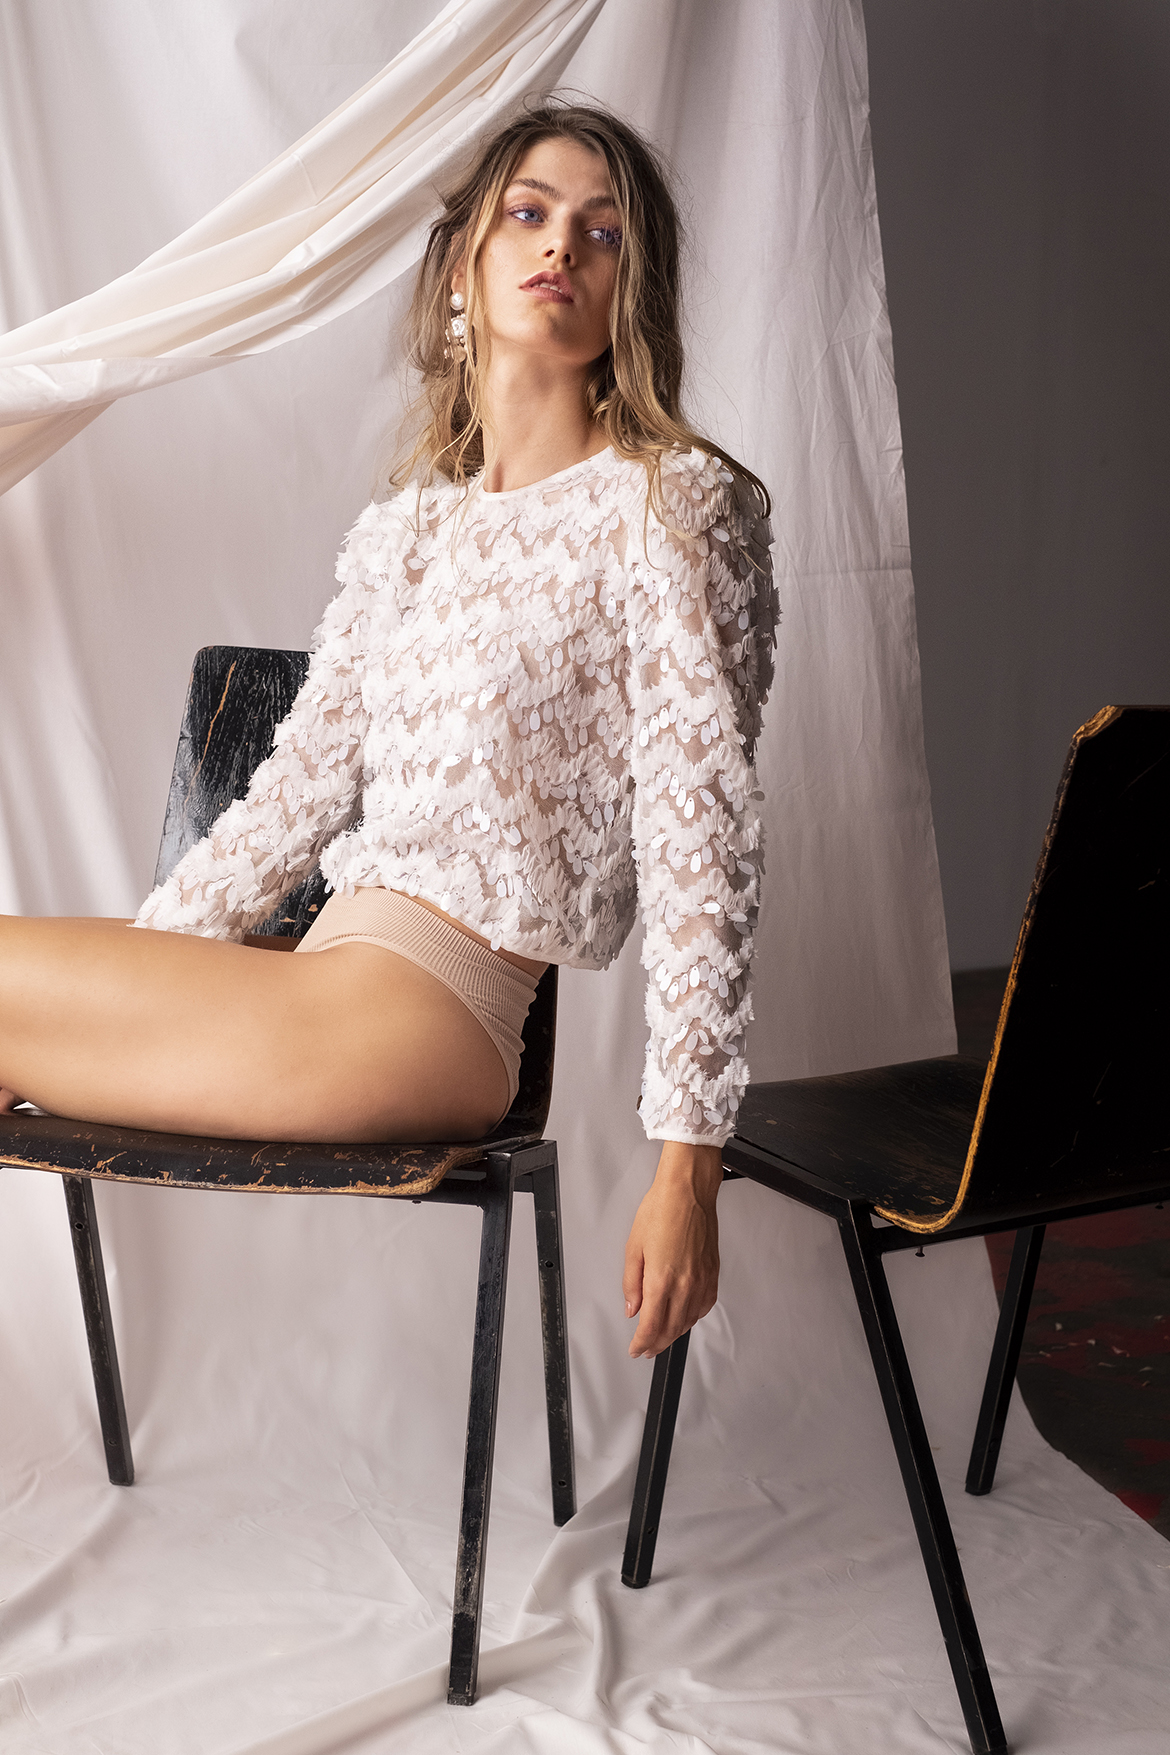 Anna-Lena_Guenther_eastwestmodels_MICHELLE_5818_web